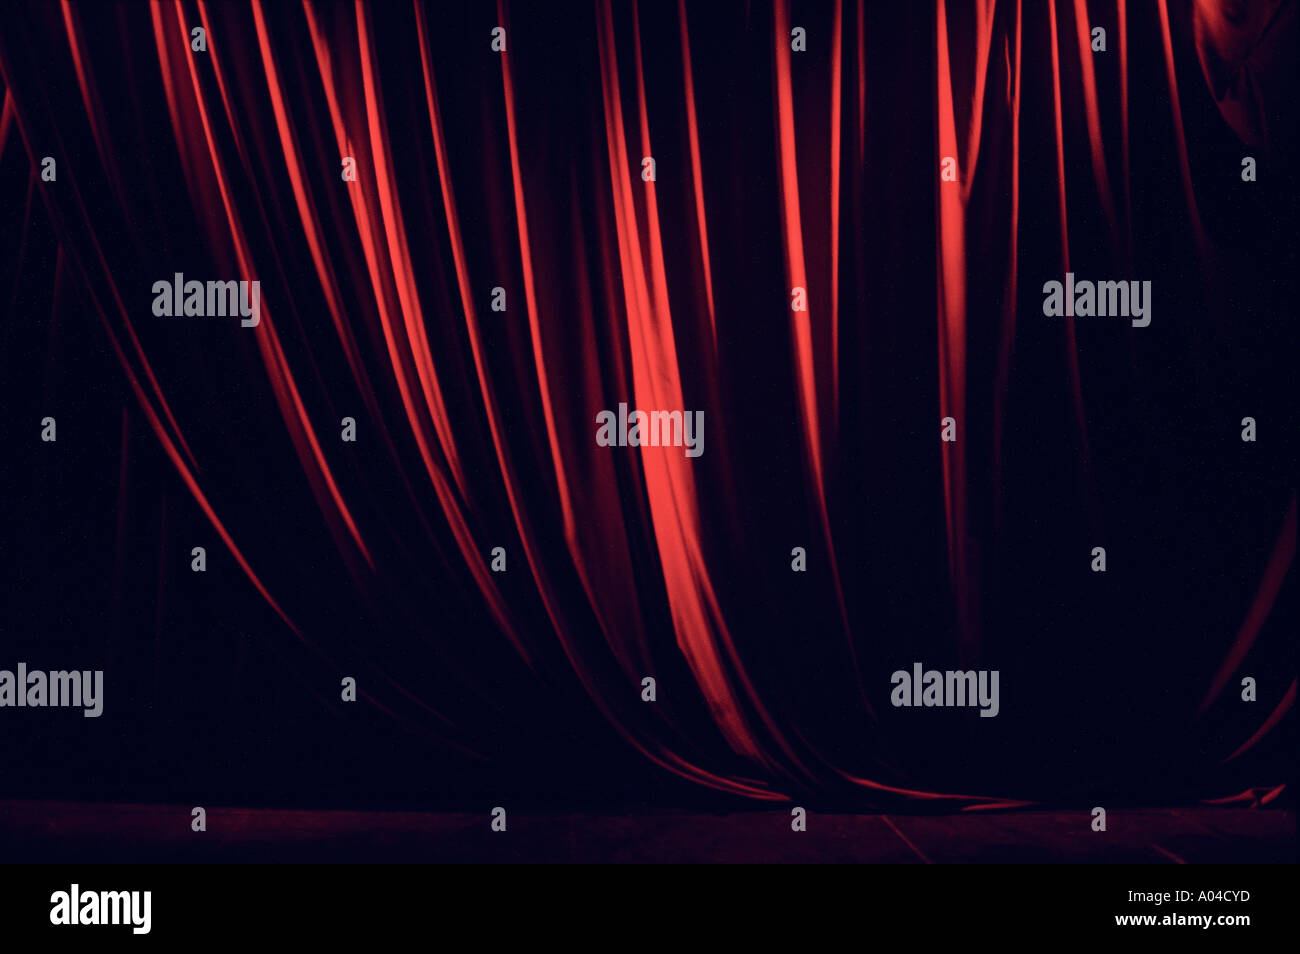 Red theatre curtain on a stage - Stock Image